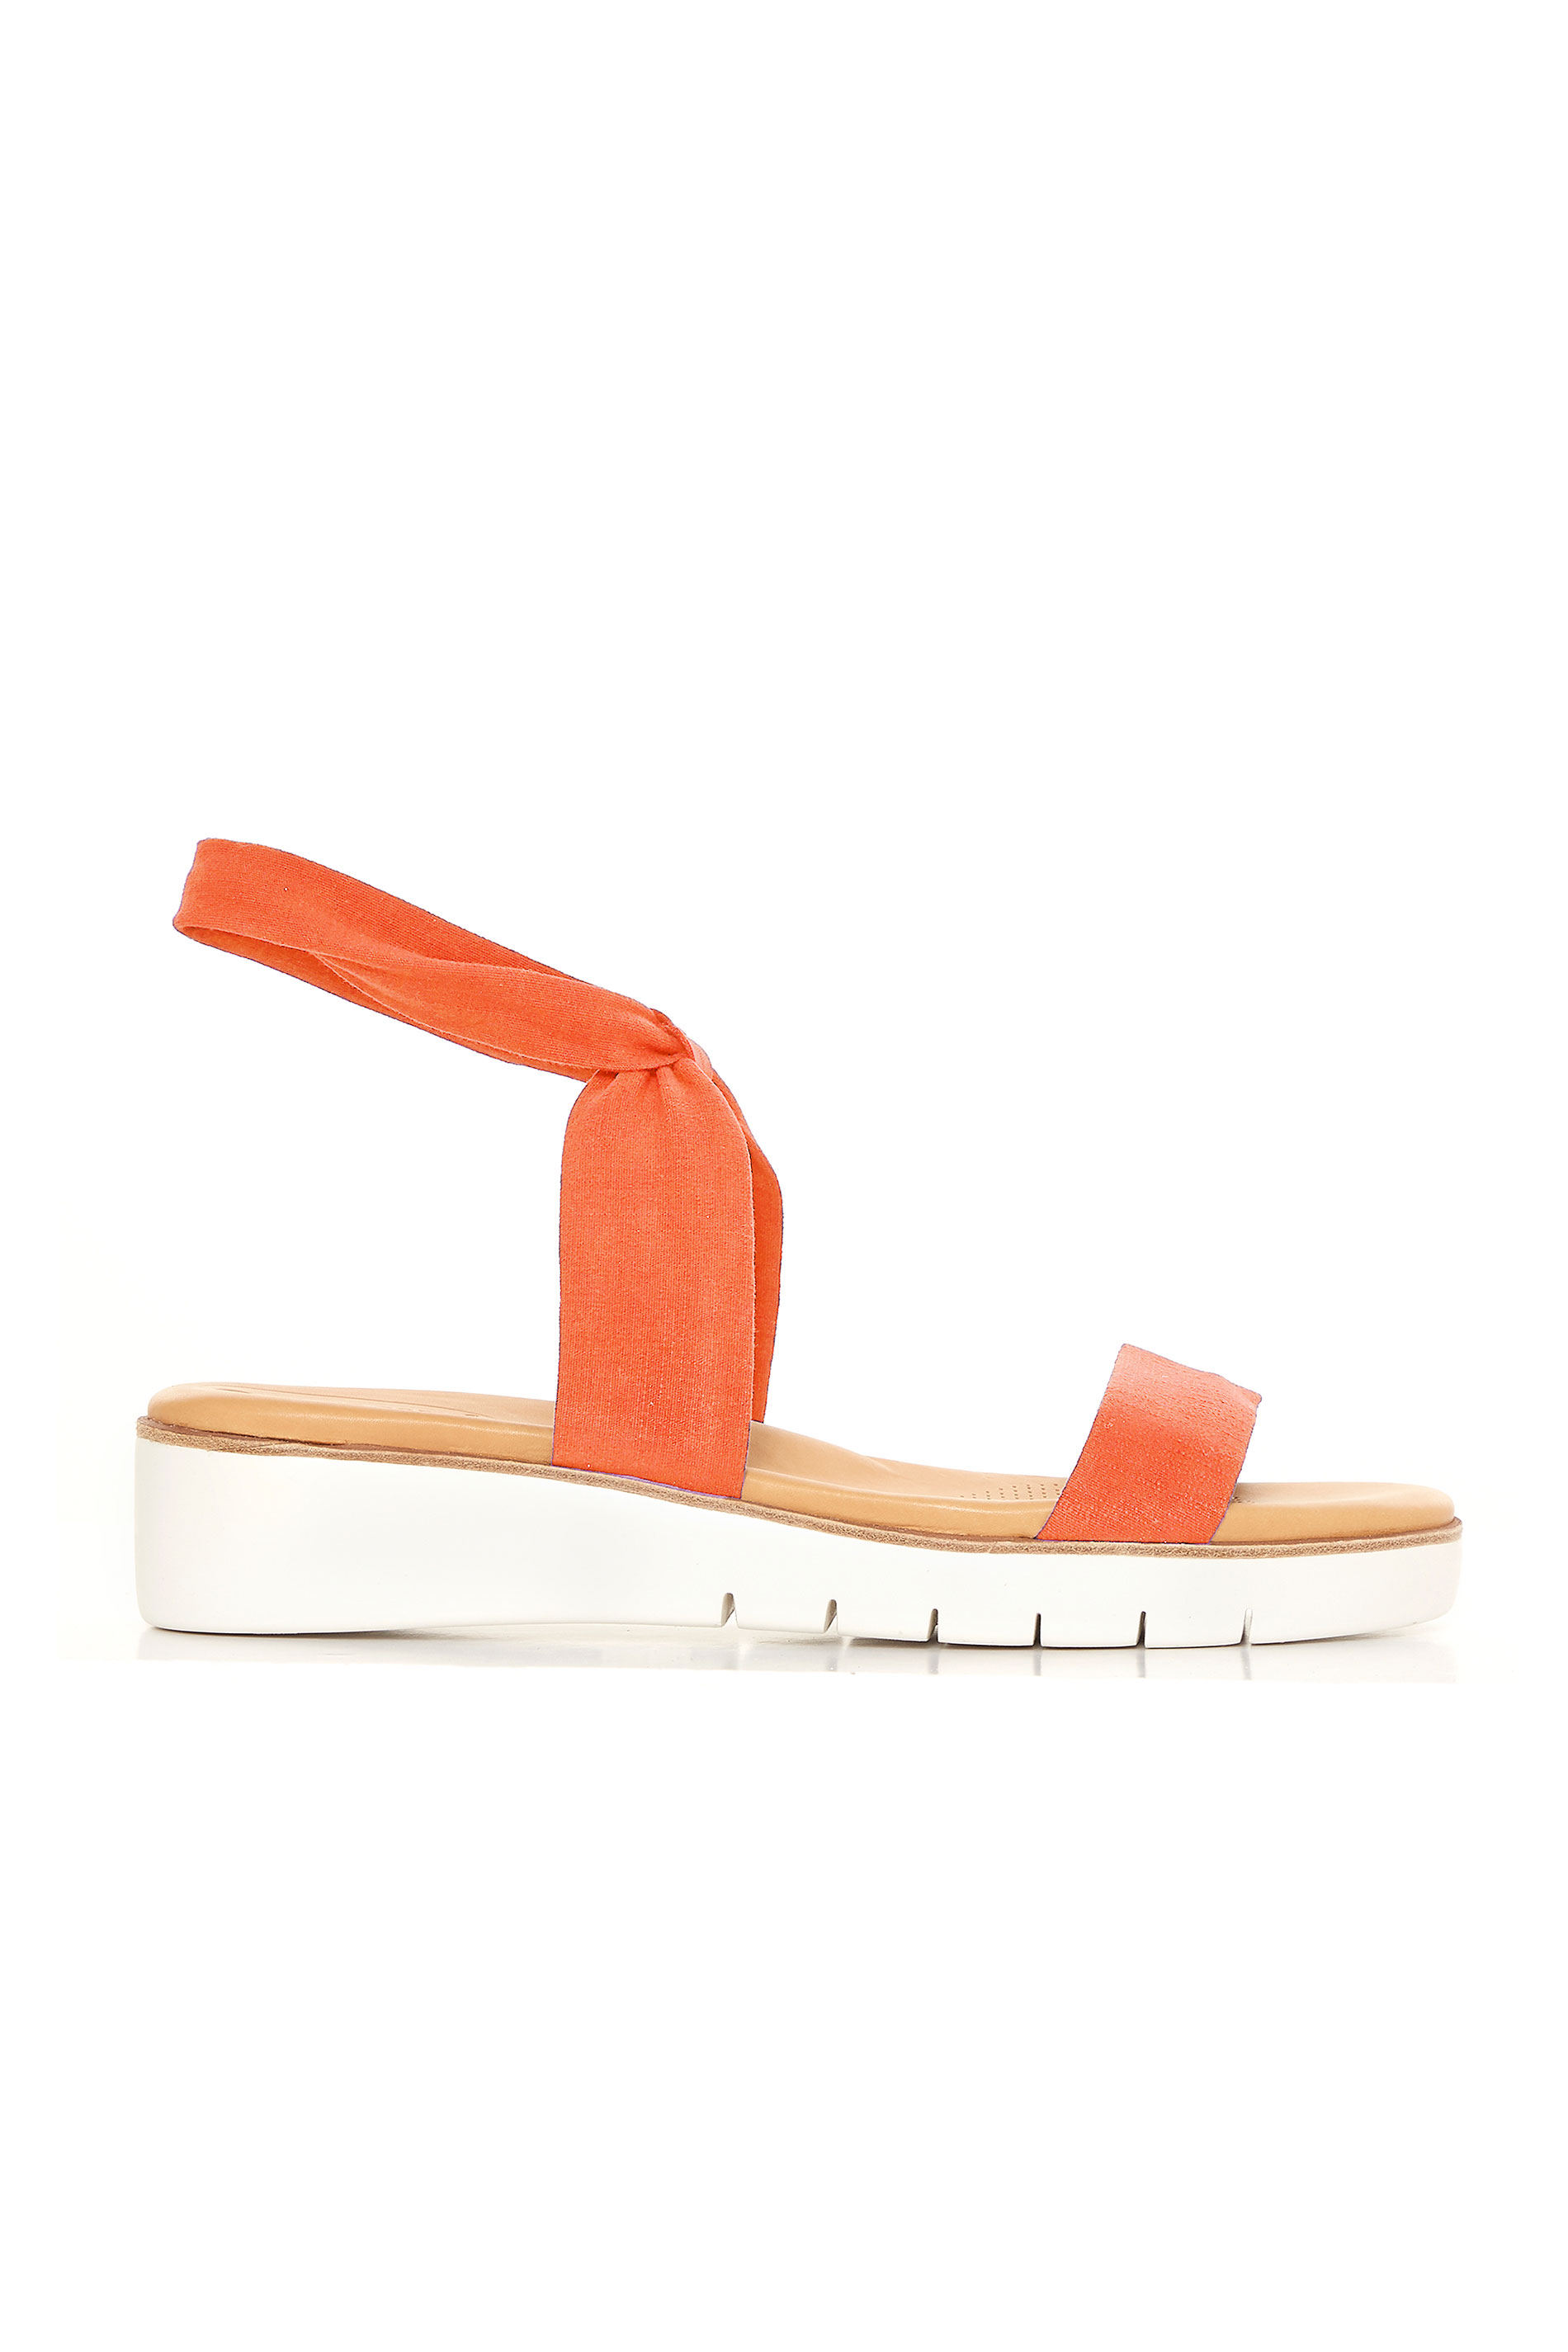 CORSO COMO Rose Wedge Heel Sandals